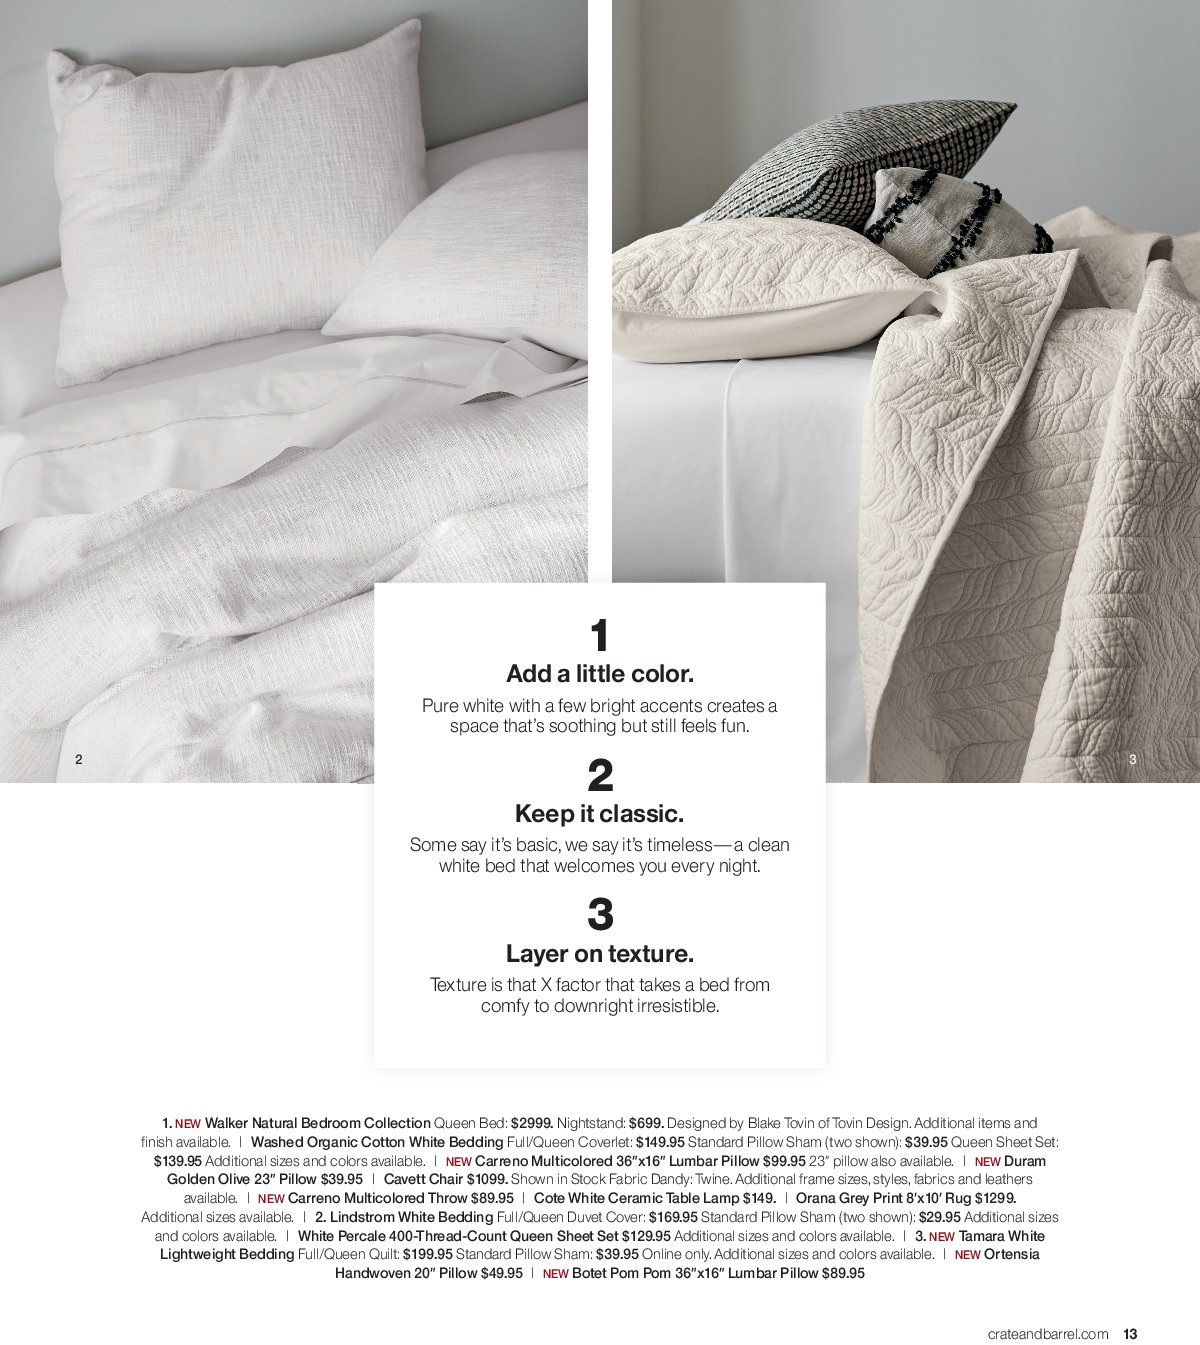 Crate & Barrel Flyer - 03.01.2019 - 03.31.2019 - Sales products - bed, bedding, cotton, duvet, duvet cover, frame, lamp, rug, sham, sheet, sheet set, table, throw, chair, pillow, queen bed, quilt, organic, thread. Page 13.